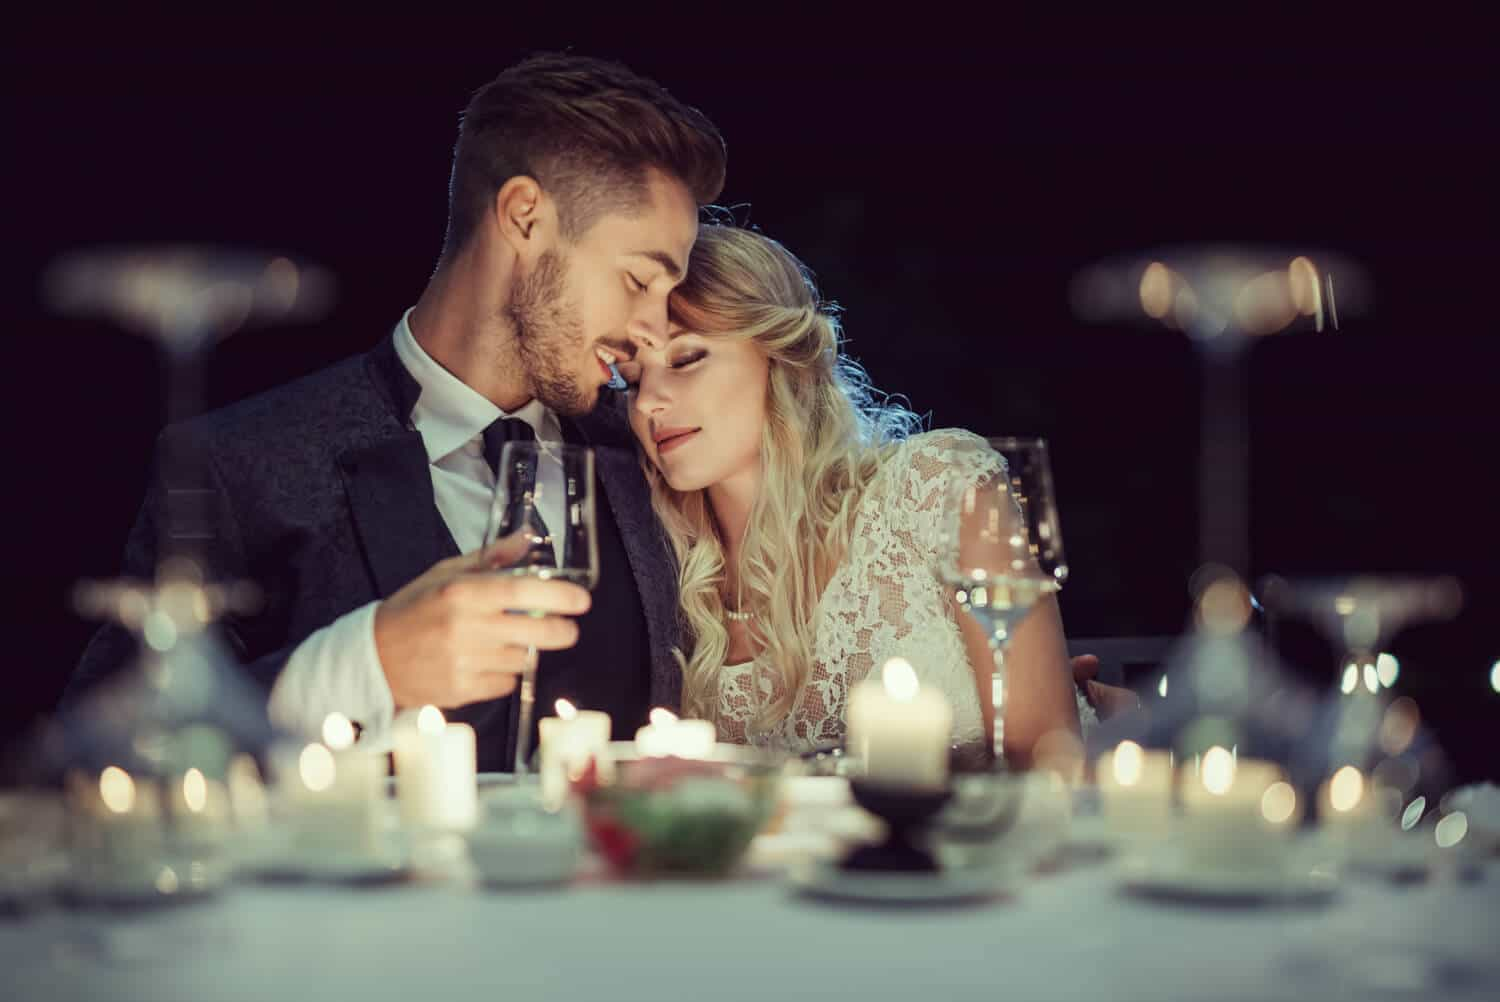 a newlywed couple at a candlelit table